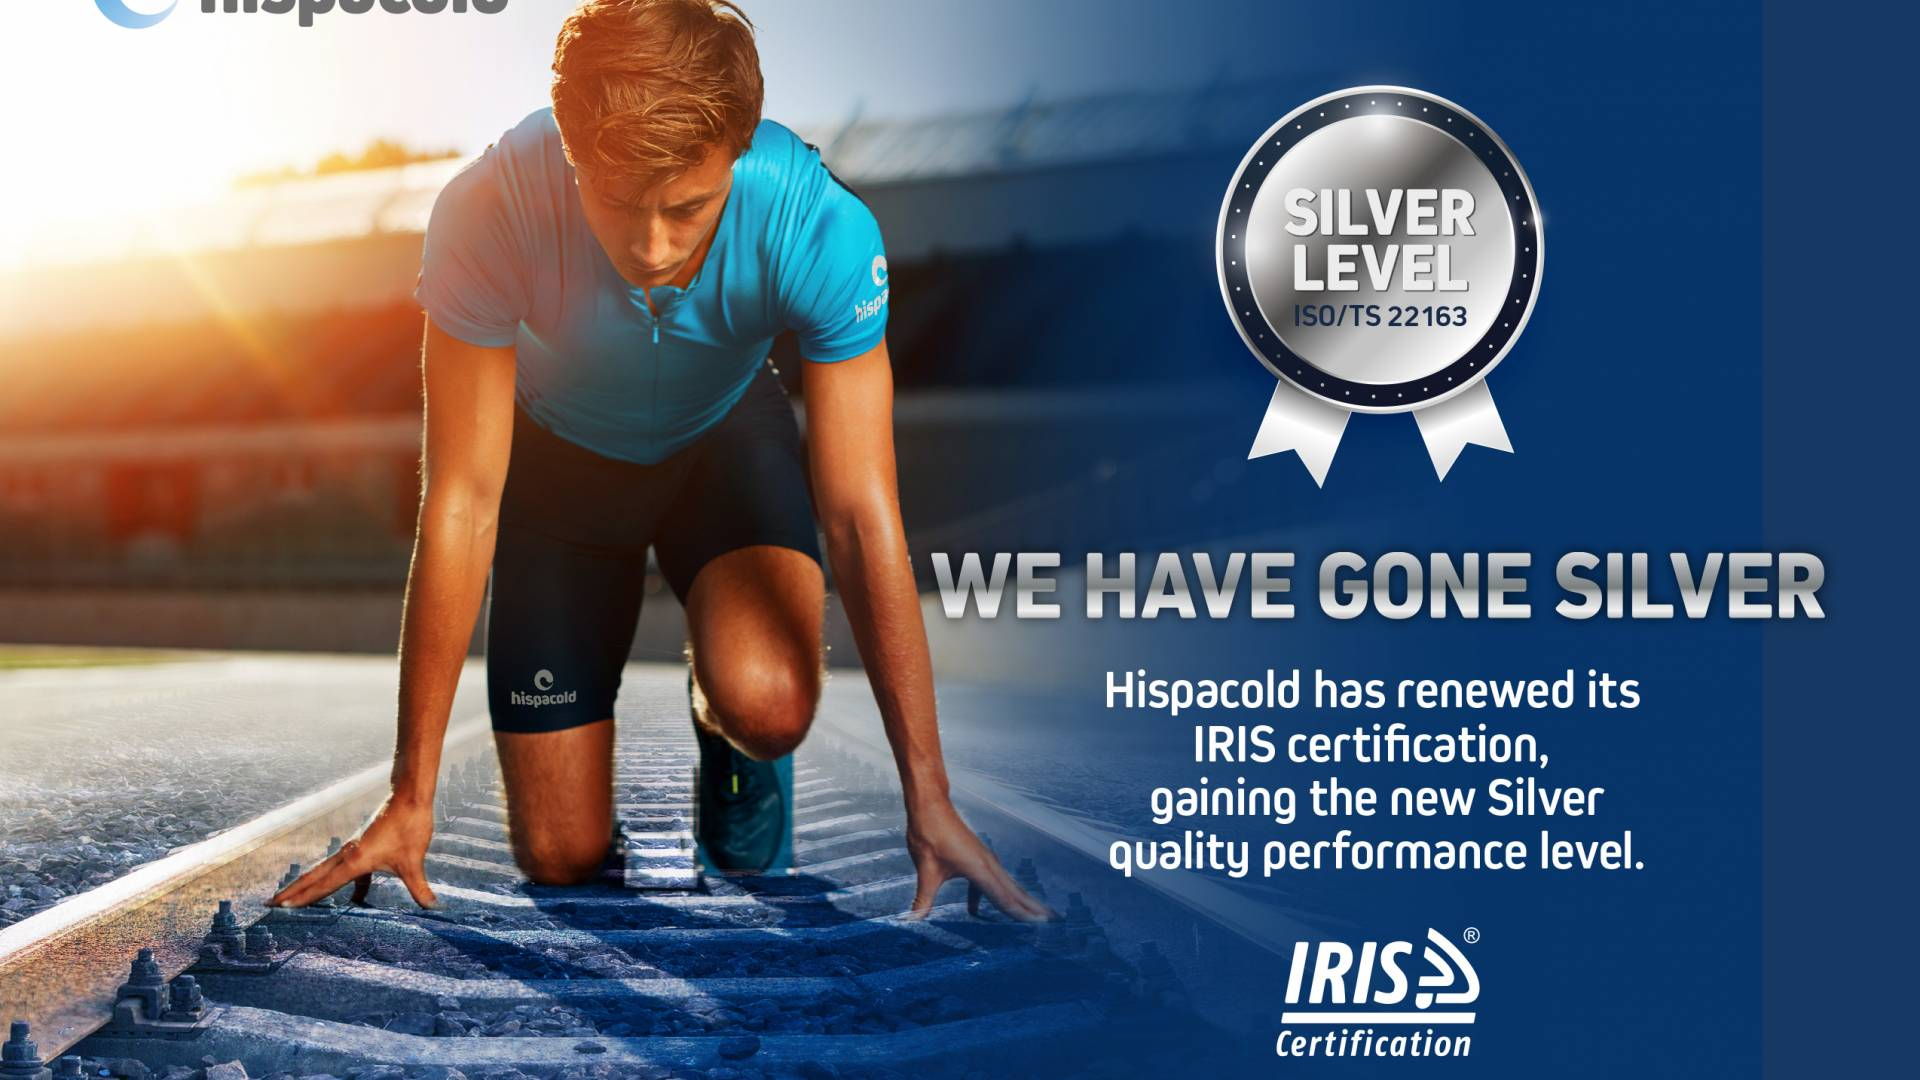 Hispacold renews IRIS performance quality certificate and gains top level Silver